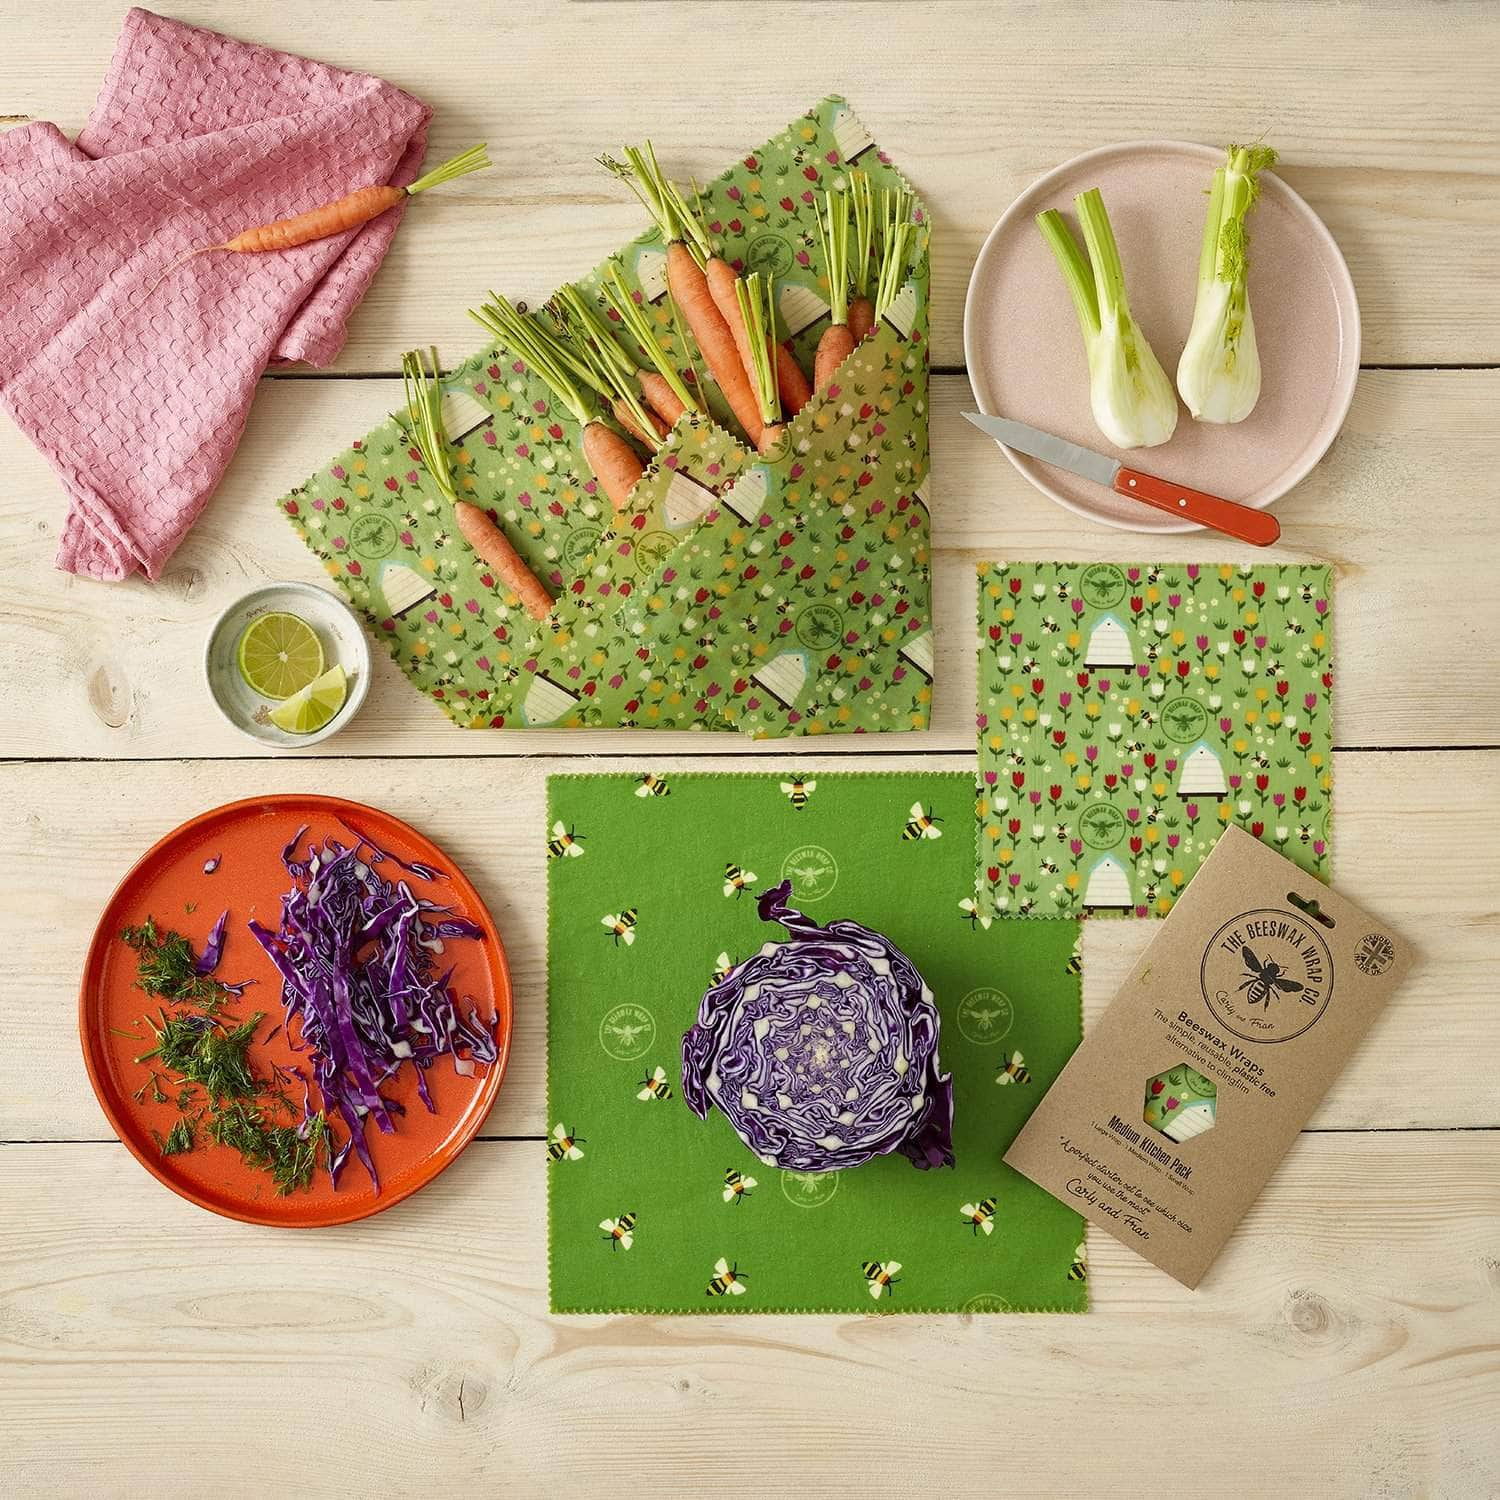 *New* Beeswax wraps - medium kitchen pack Land